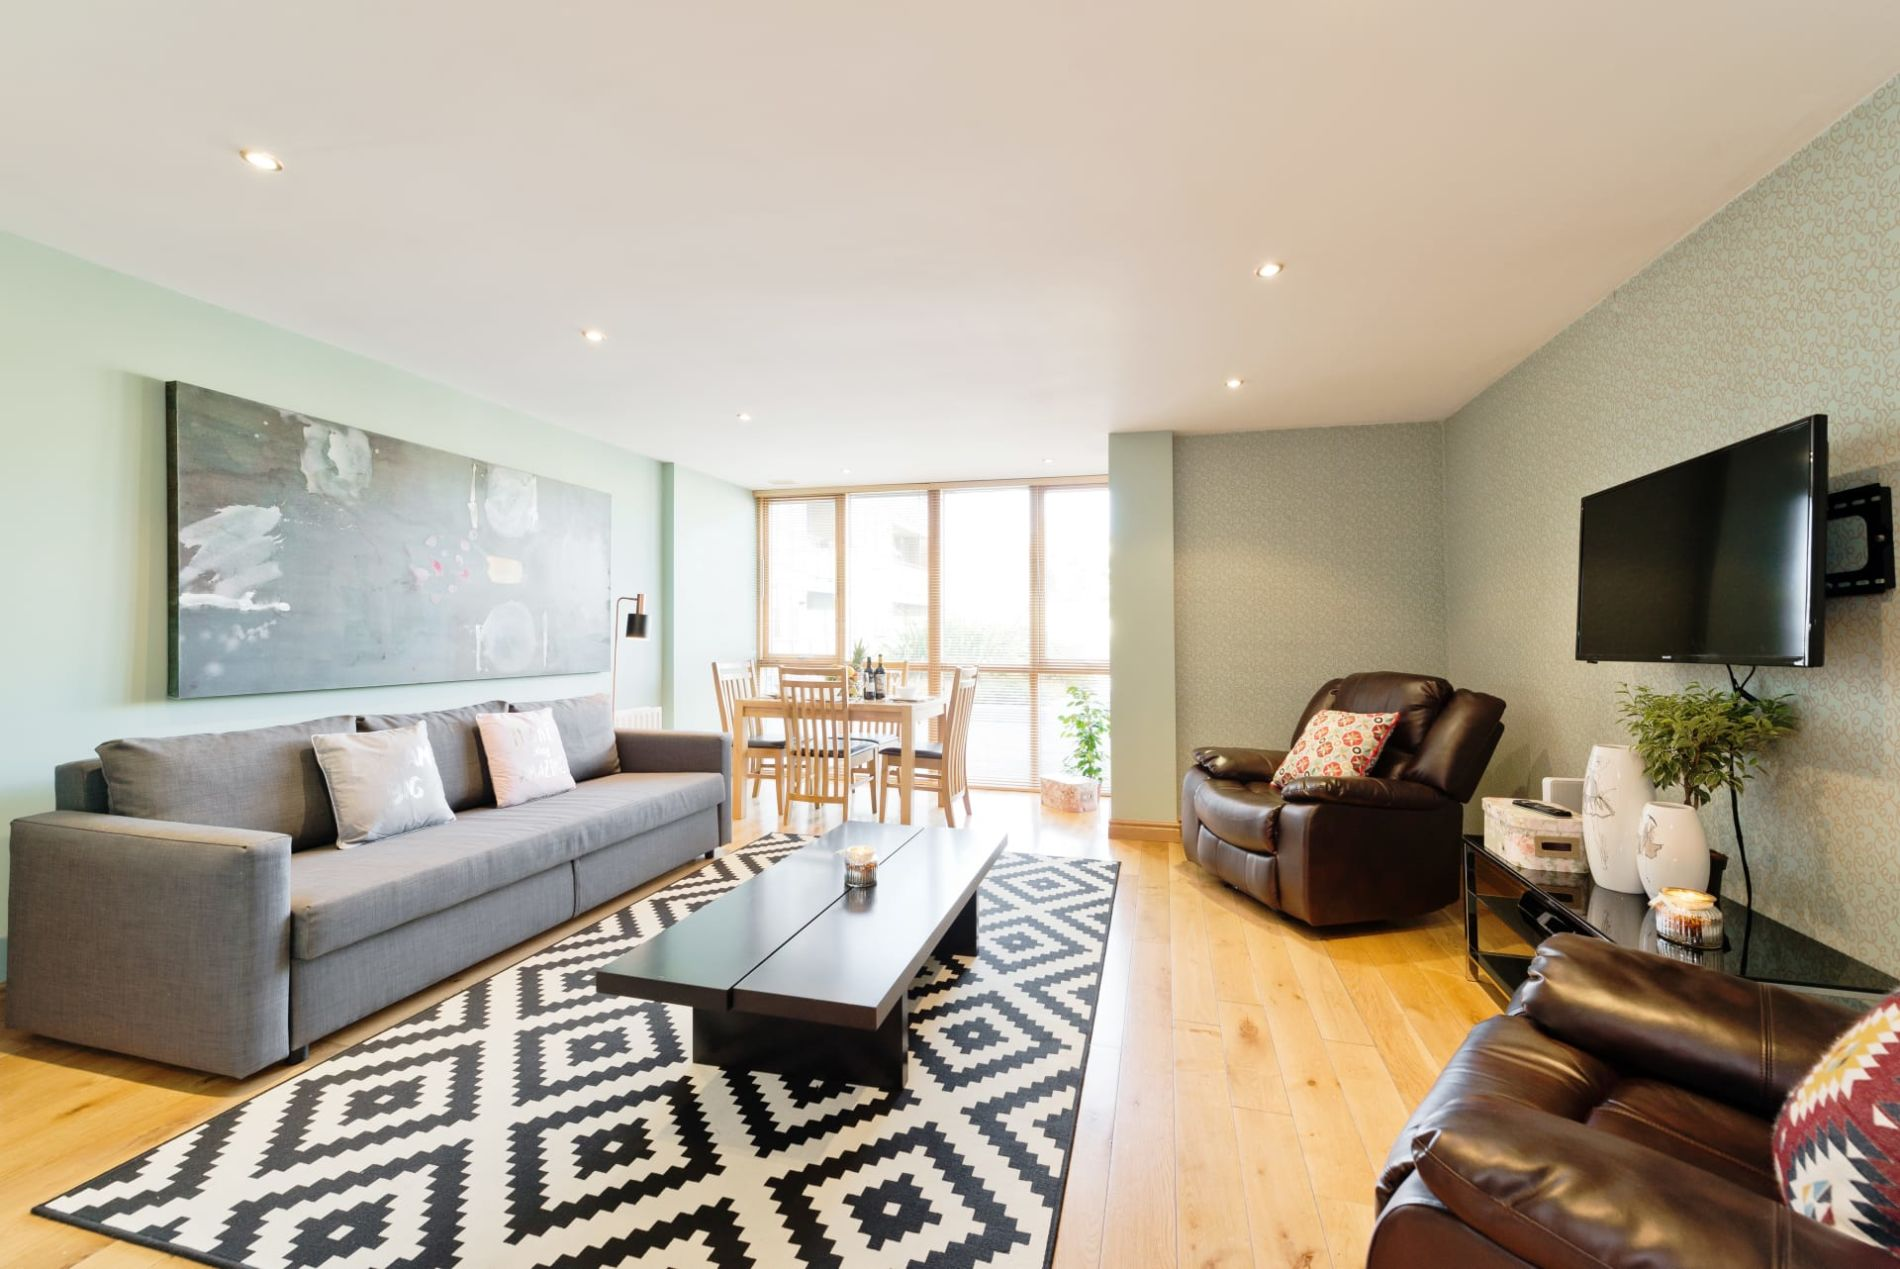 1 Bedroom Serviced Apartment in Dublin idea for families with kids